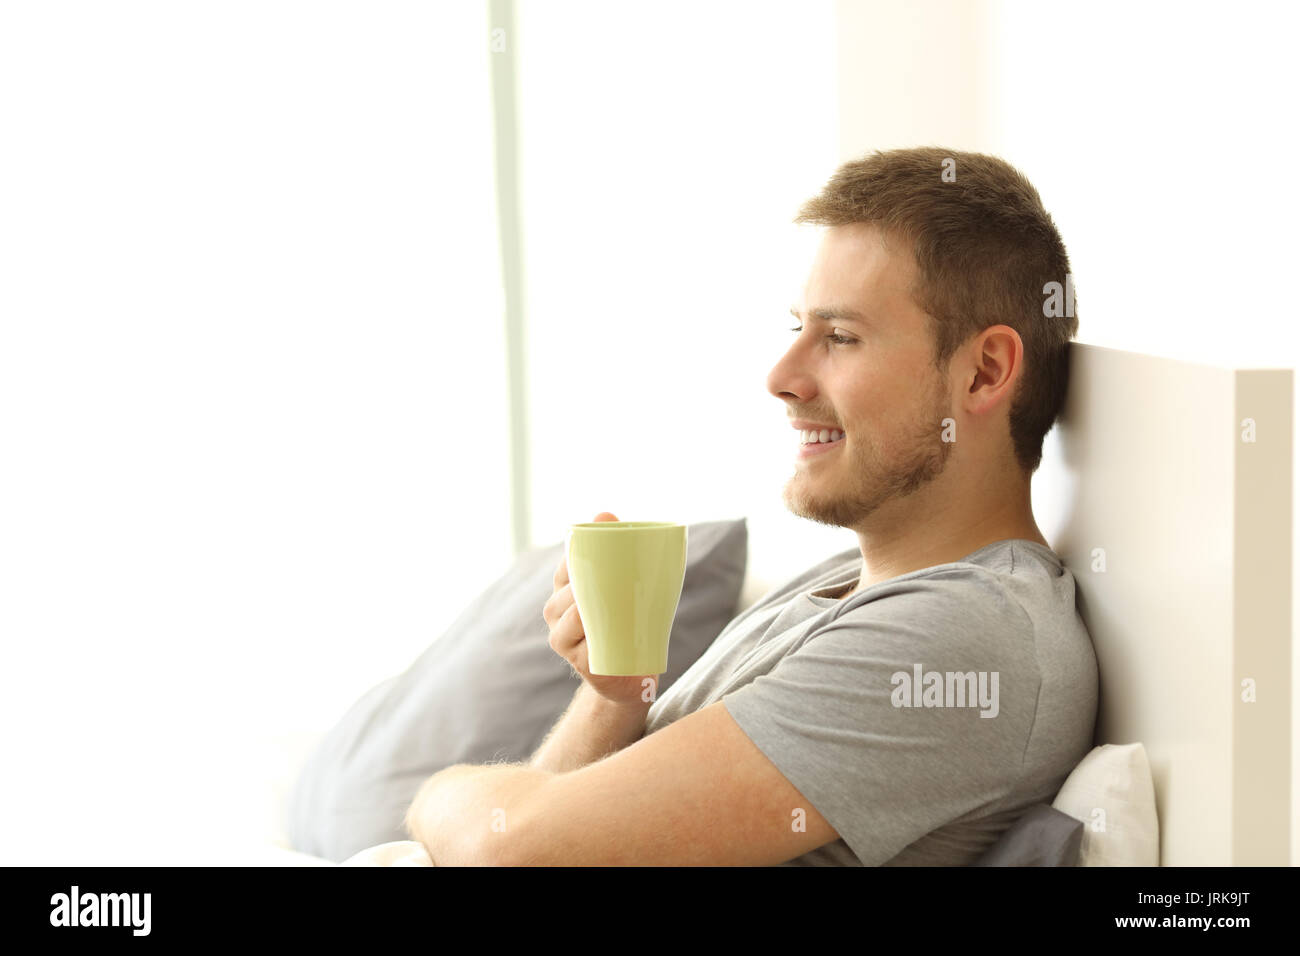 Side view of a happy man holding coffee cup having breakfast and thinking on the bed of an apartment - Stock Image